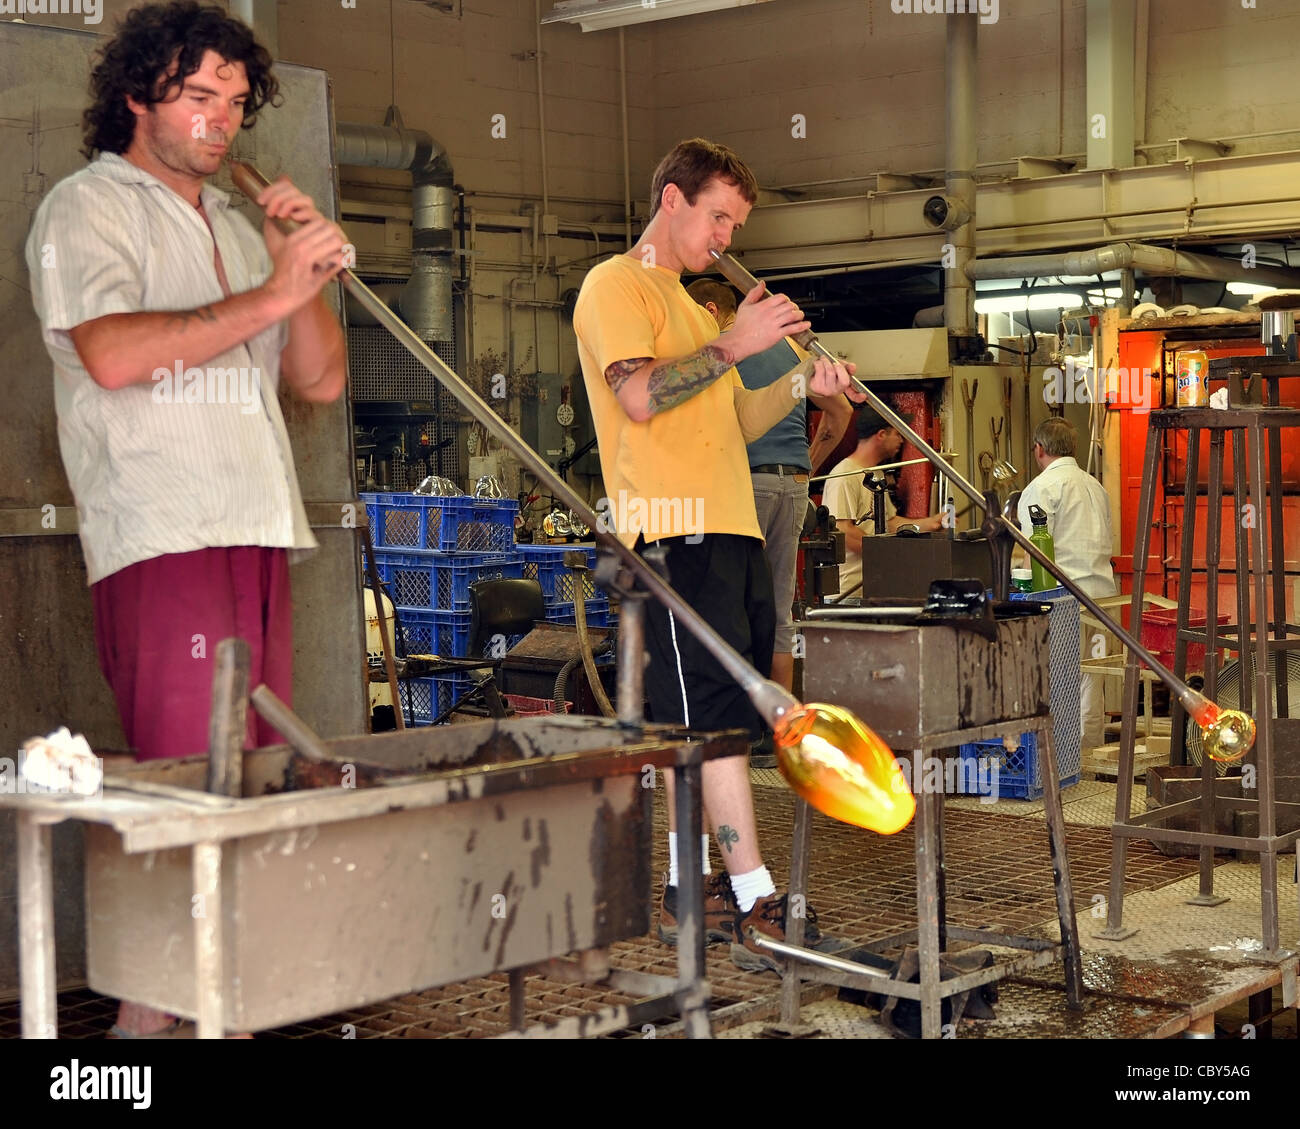 Glass blowers demonstrate their craft for tourists on the historic properties July 26, 2010 in Halifax, Nova Scotia - Stock Image